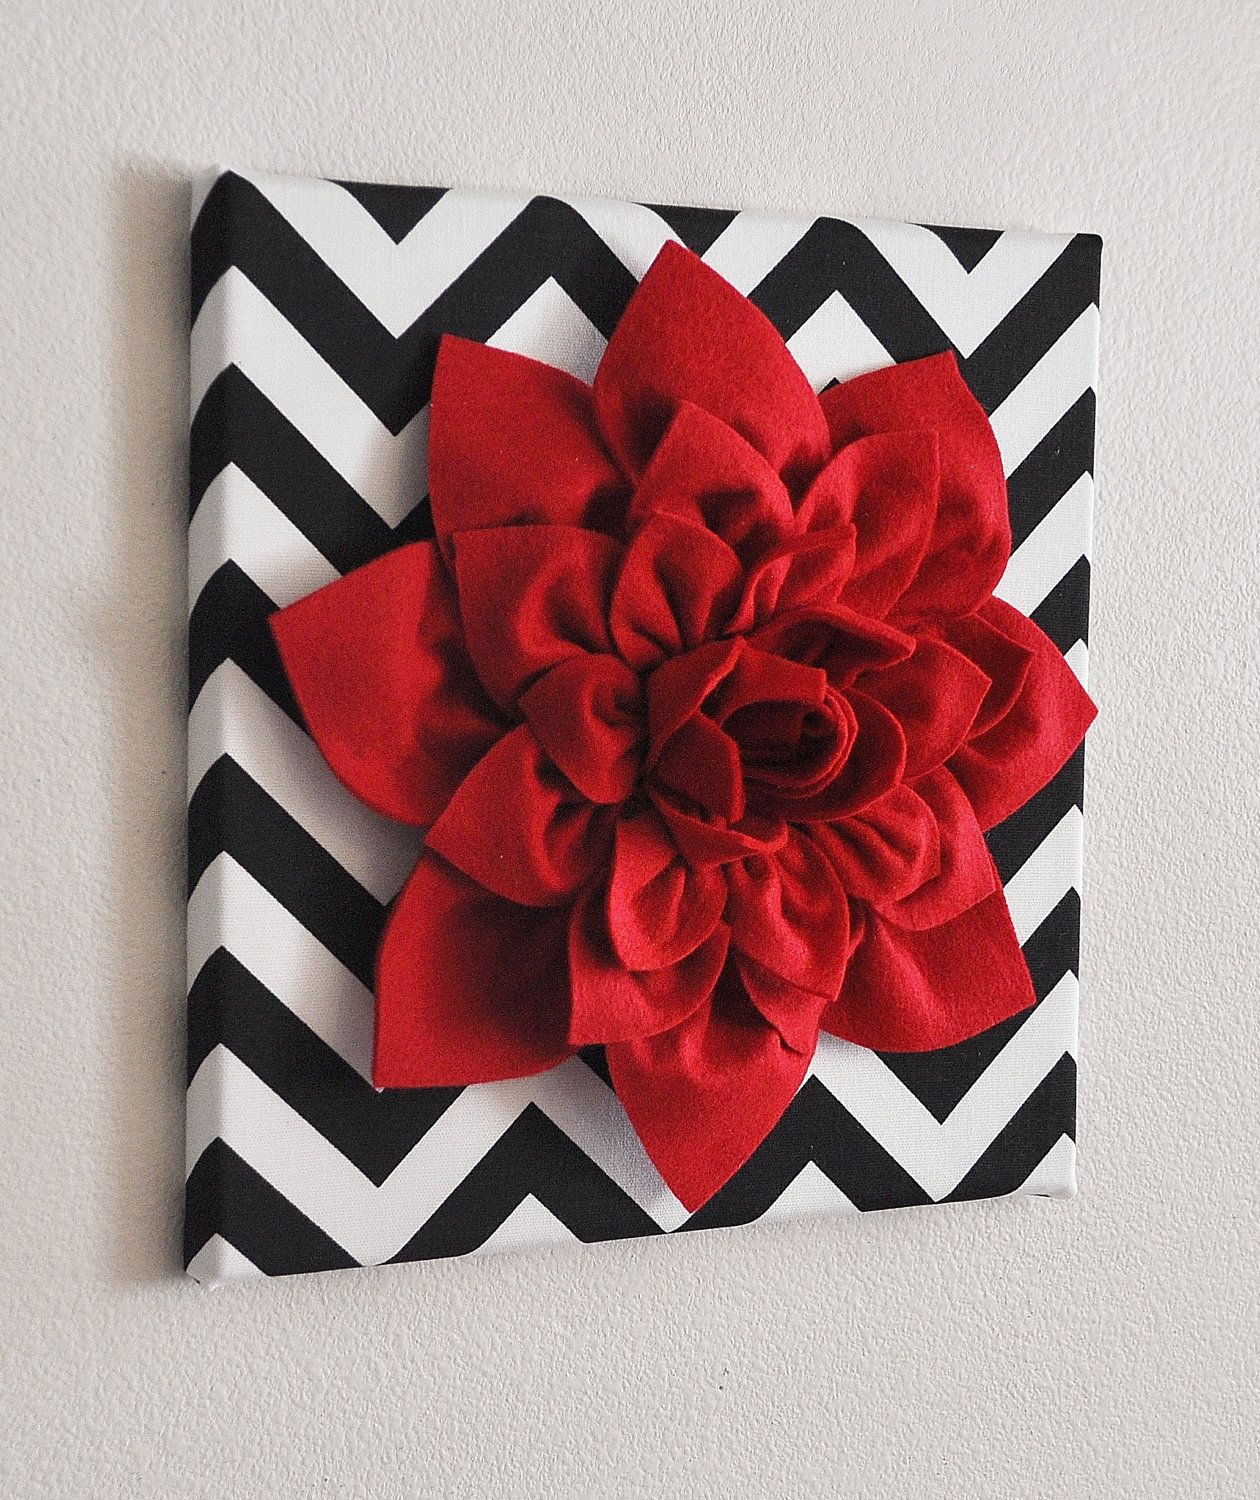 red wall flower red dahlia on black and white chevron 12 canvas wall art baby nursery wall decor via etsy i could make something similar for baby room - Red Room Decor Pinterest